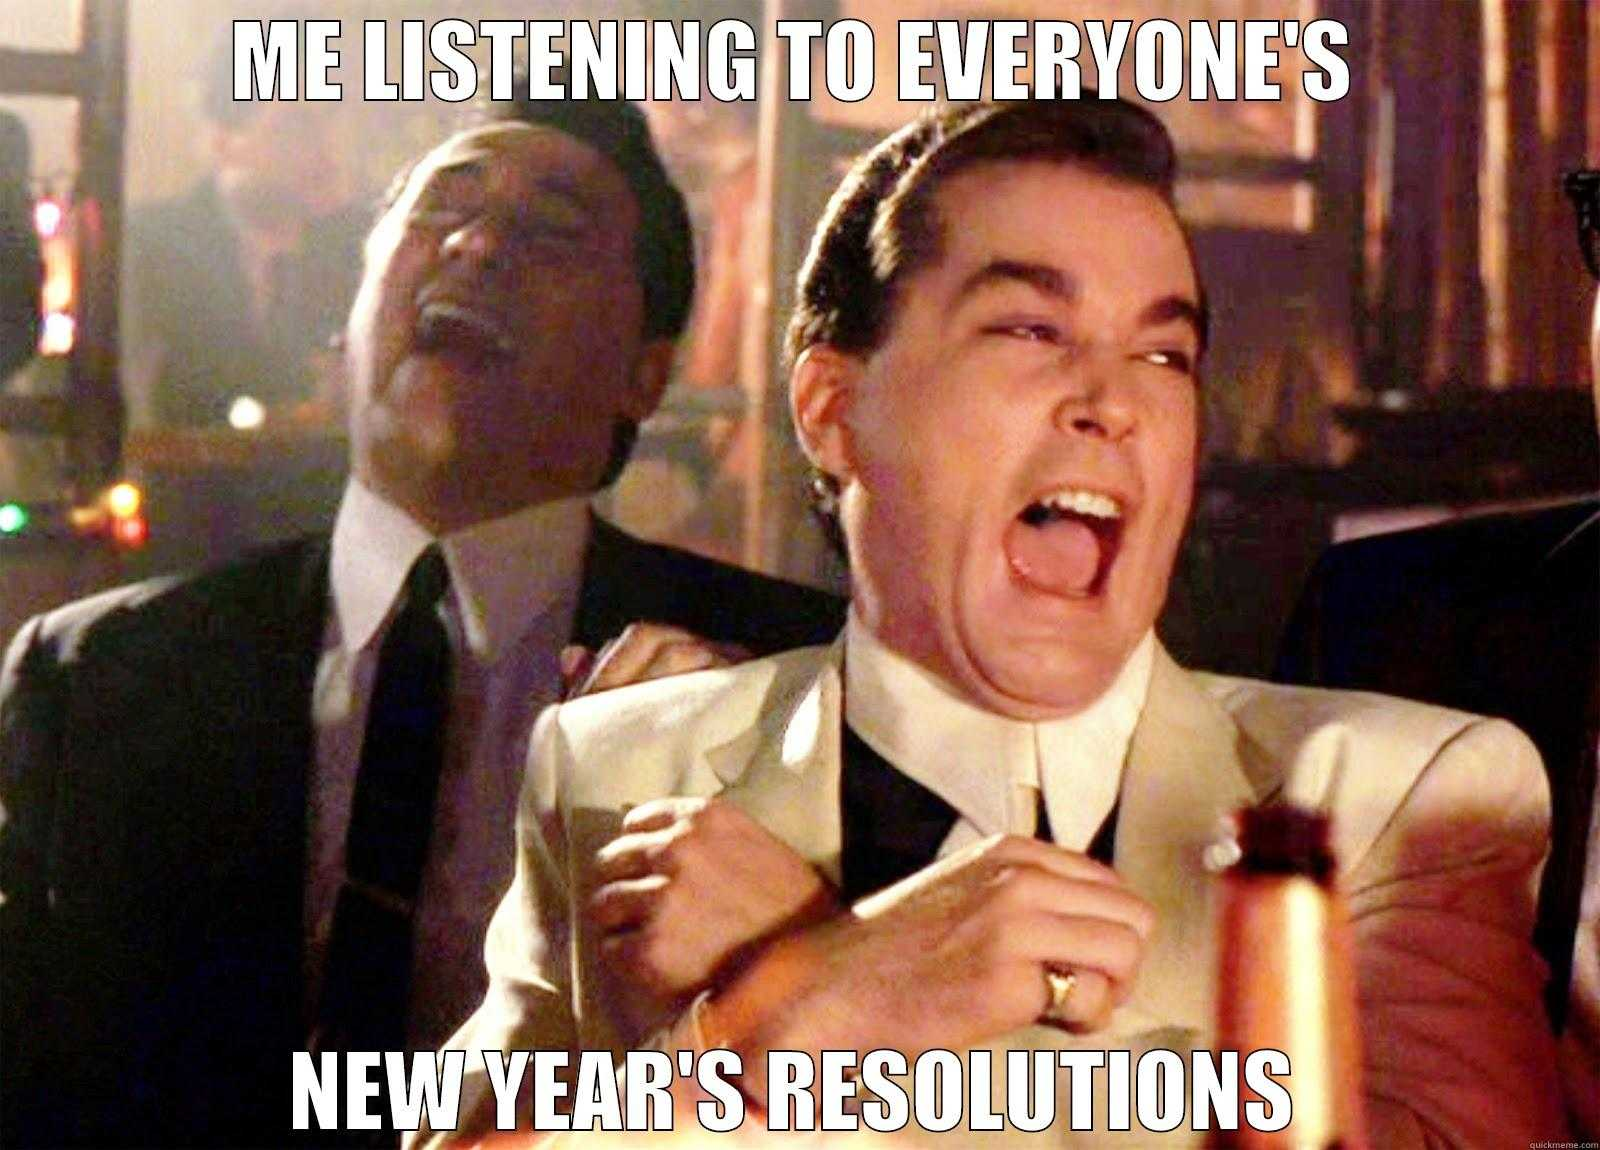 Funny New Years Resolution Memes - listening to new year's resolutions